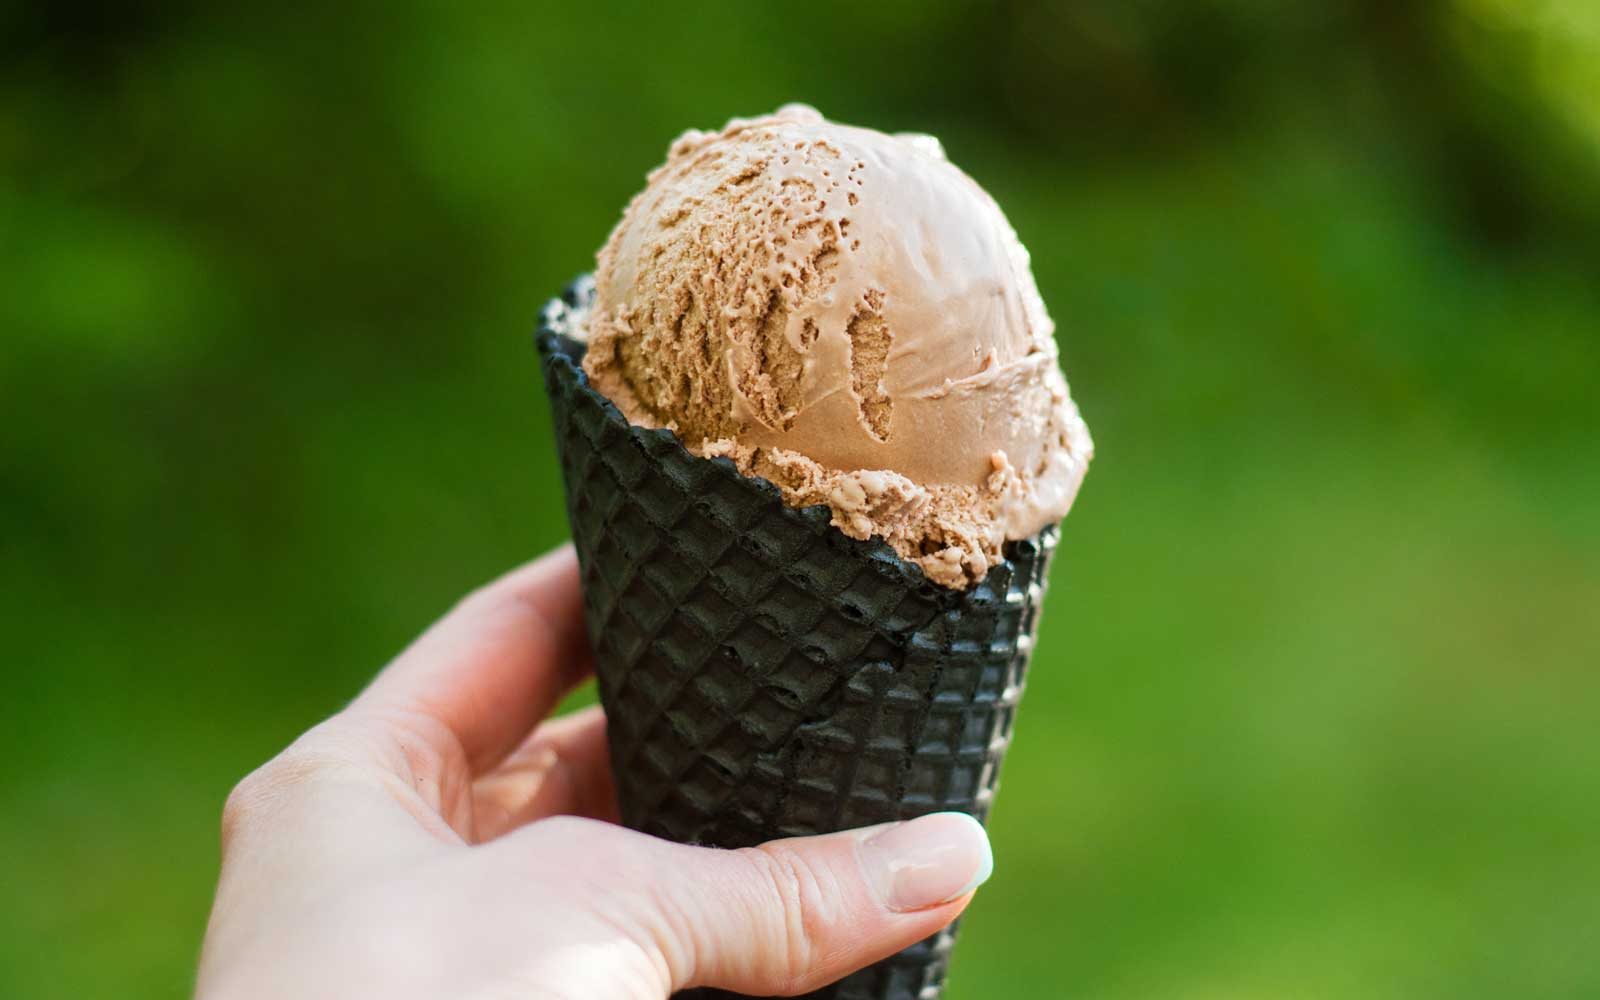 Where to Get Free Ice Cream on National Ice Cream Day